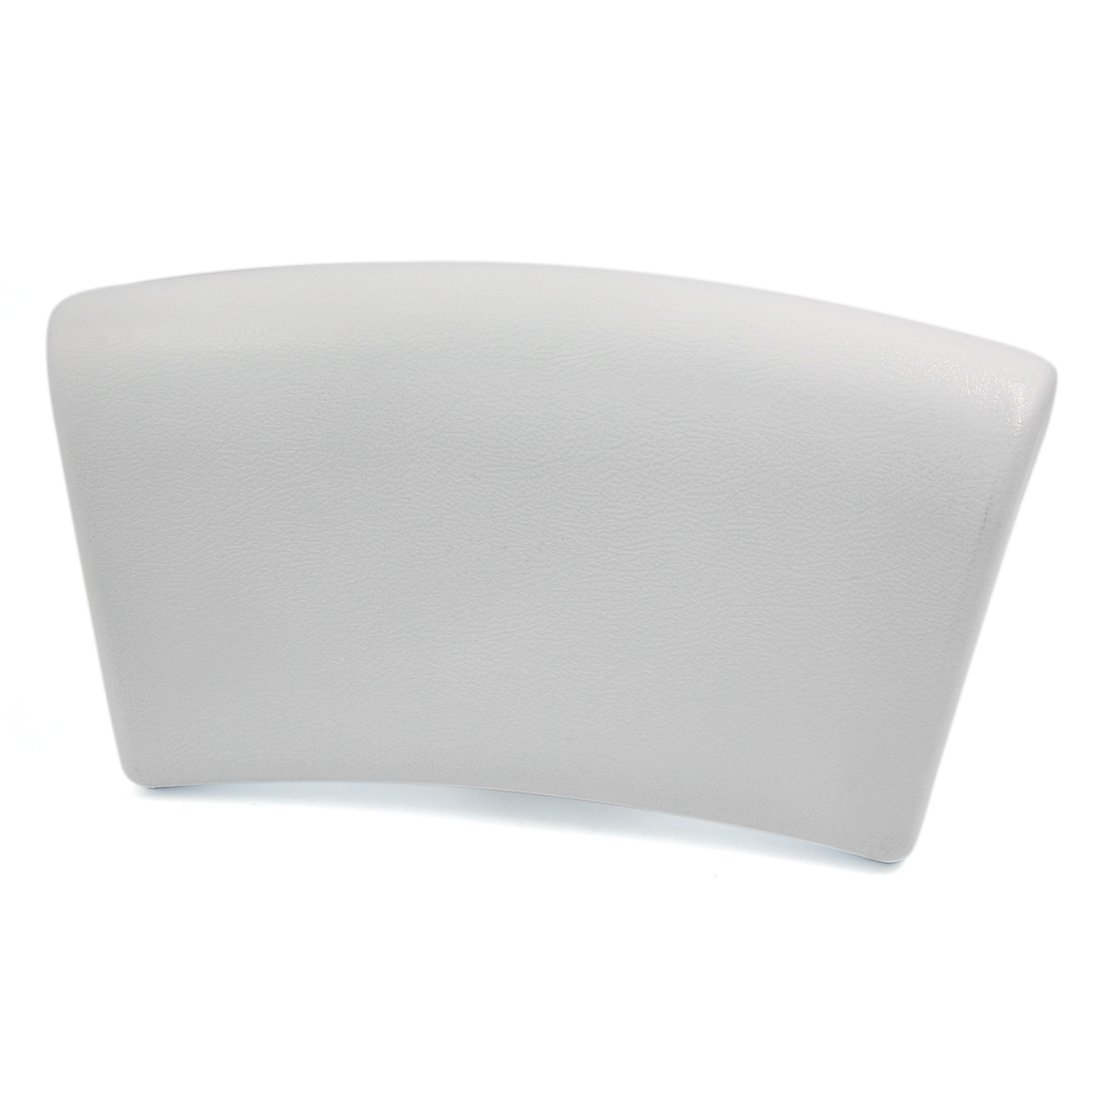 Buy Swissco 44563 Bath and Spa Pillow with Suction Cups in Cheap ...